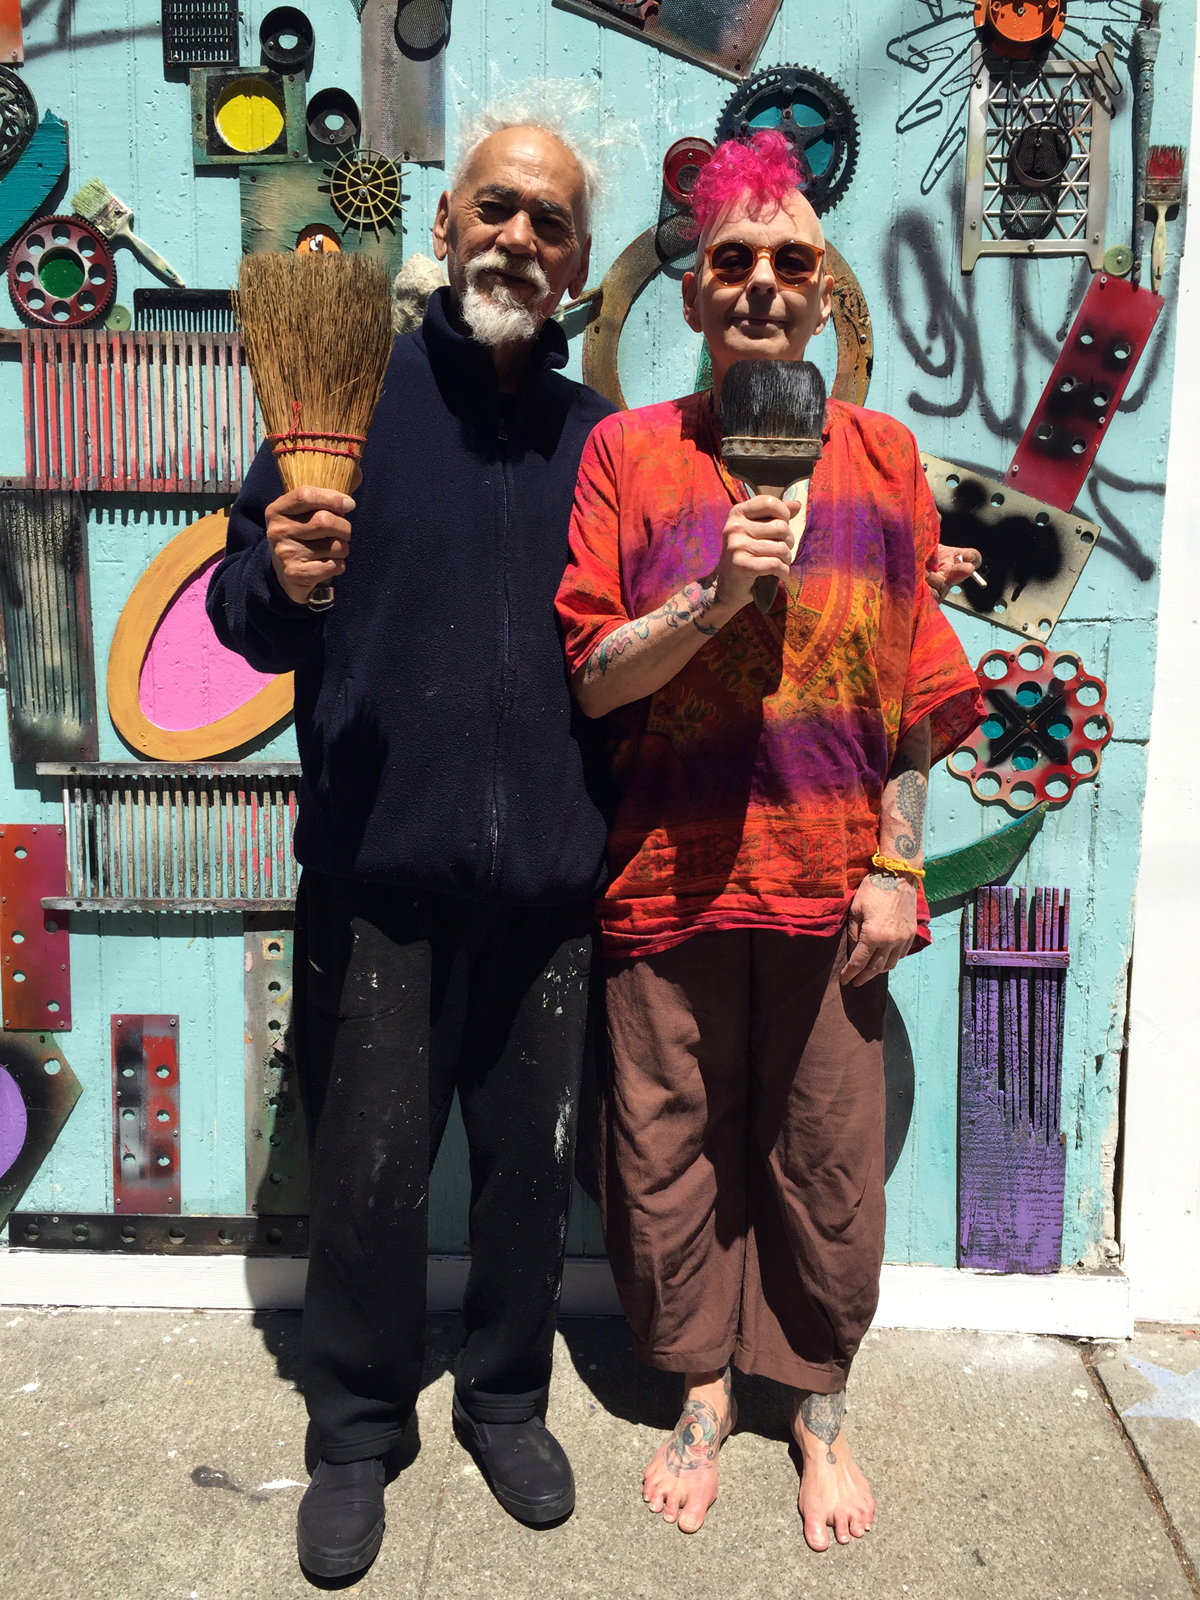 New American Gothic   Hayes Valley, San Francisco.  © Jud Burgess 2015